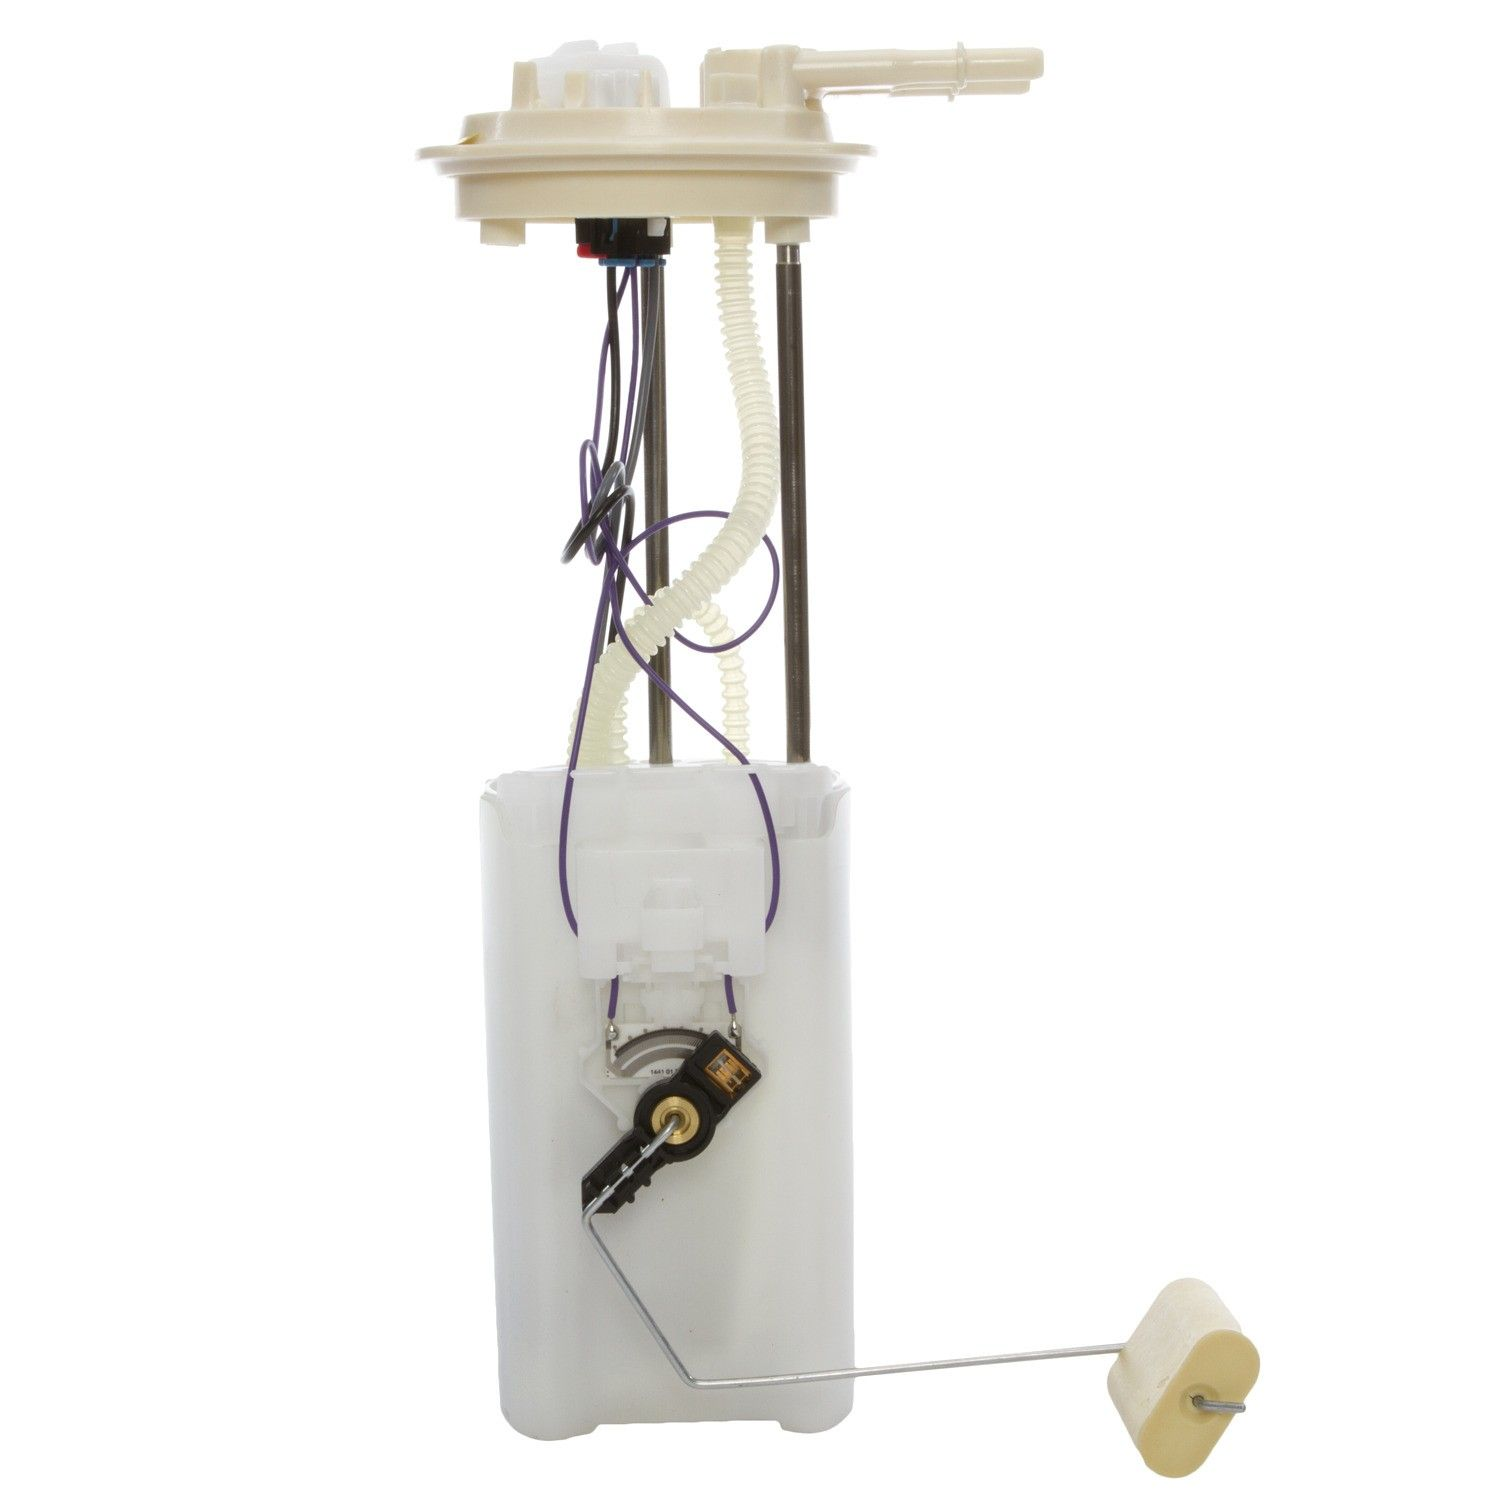 Chevrolet Express 3500 Fuel Pump Module Assembly Replacement 1996 Chevy Van Wiring Power 8 Cyl 57l Delphi Fg0023 Strainer Is Inside The Once New Has Been